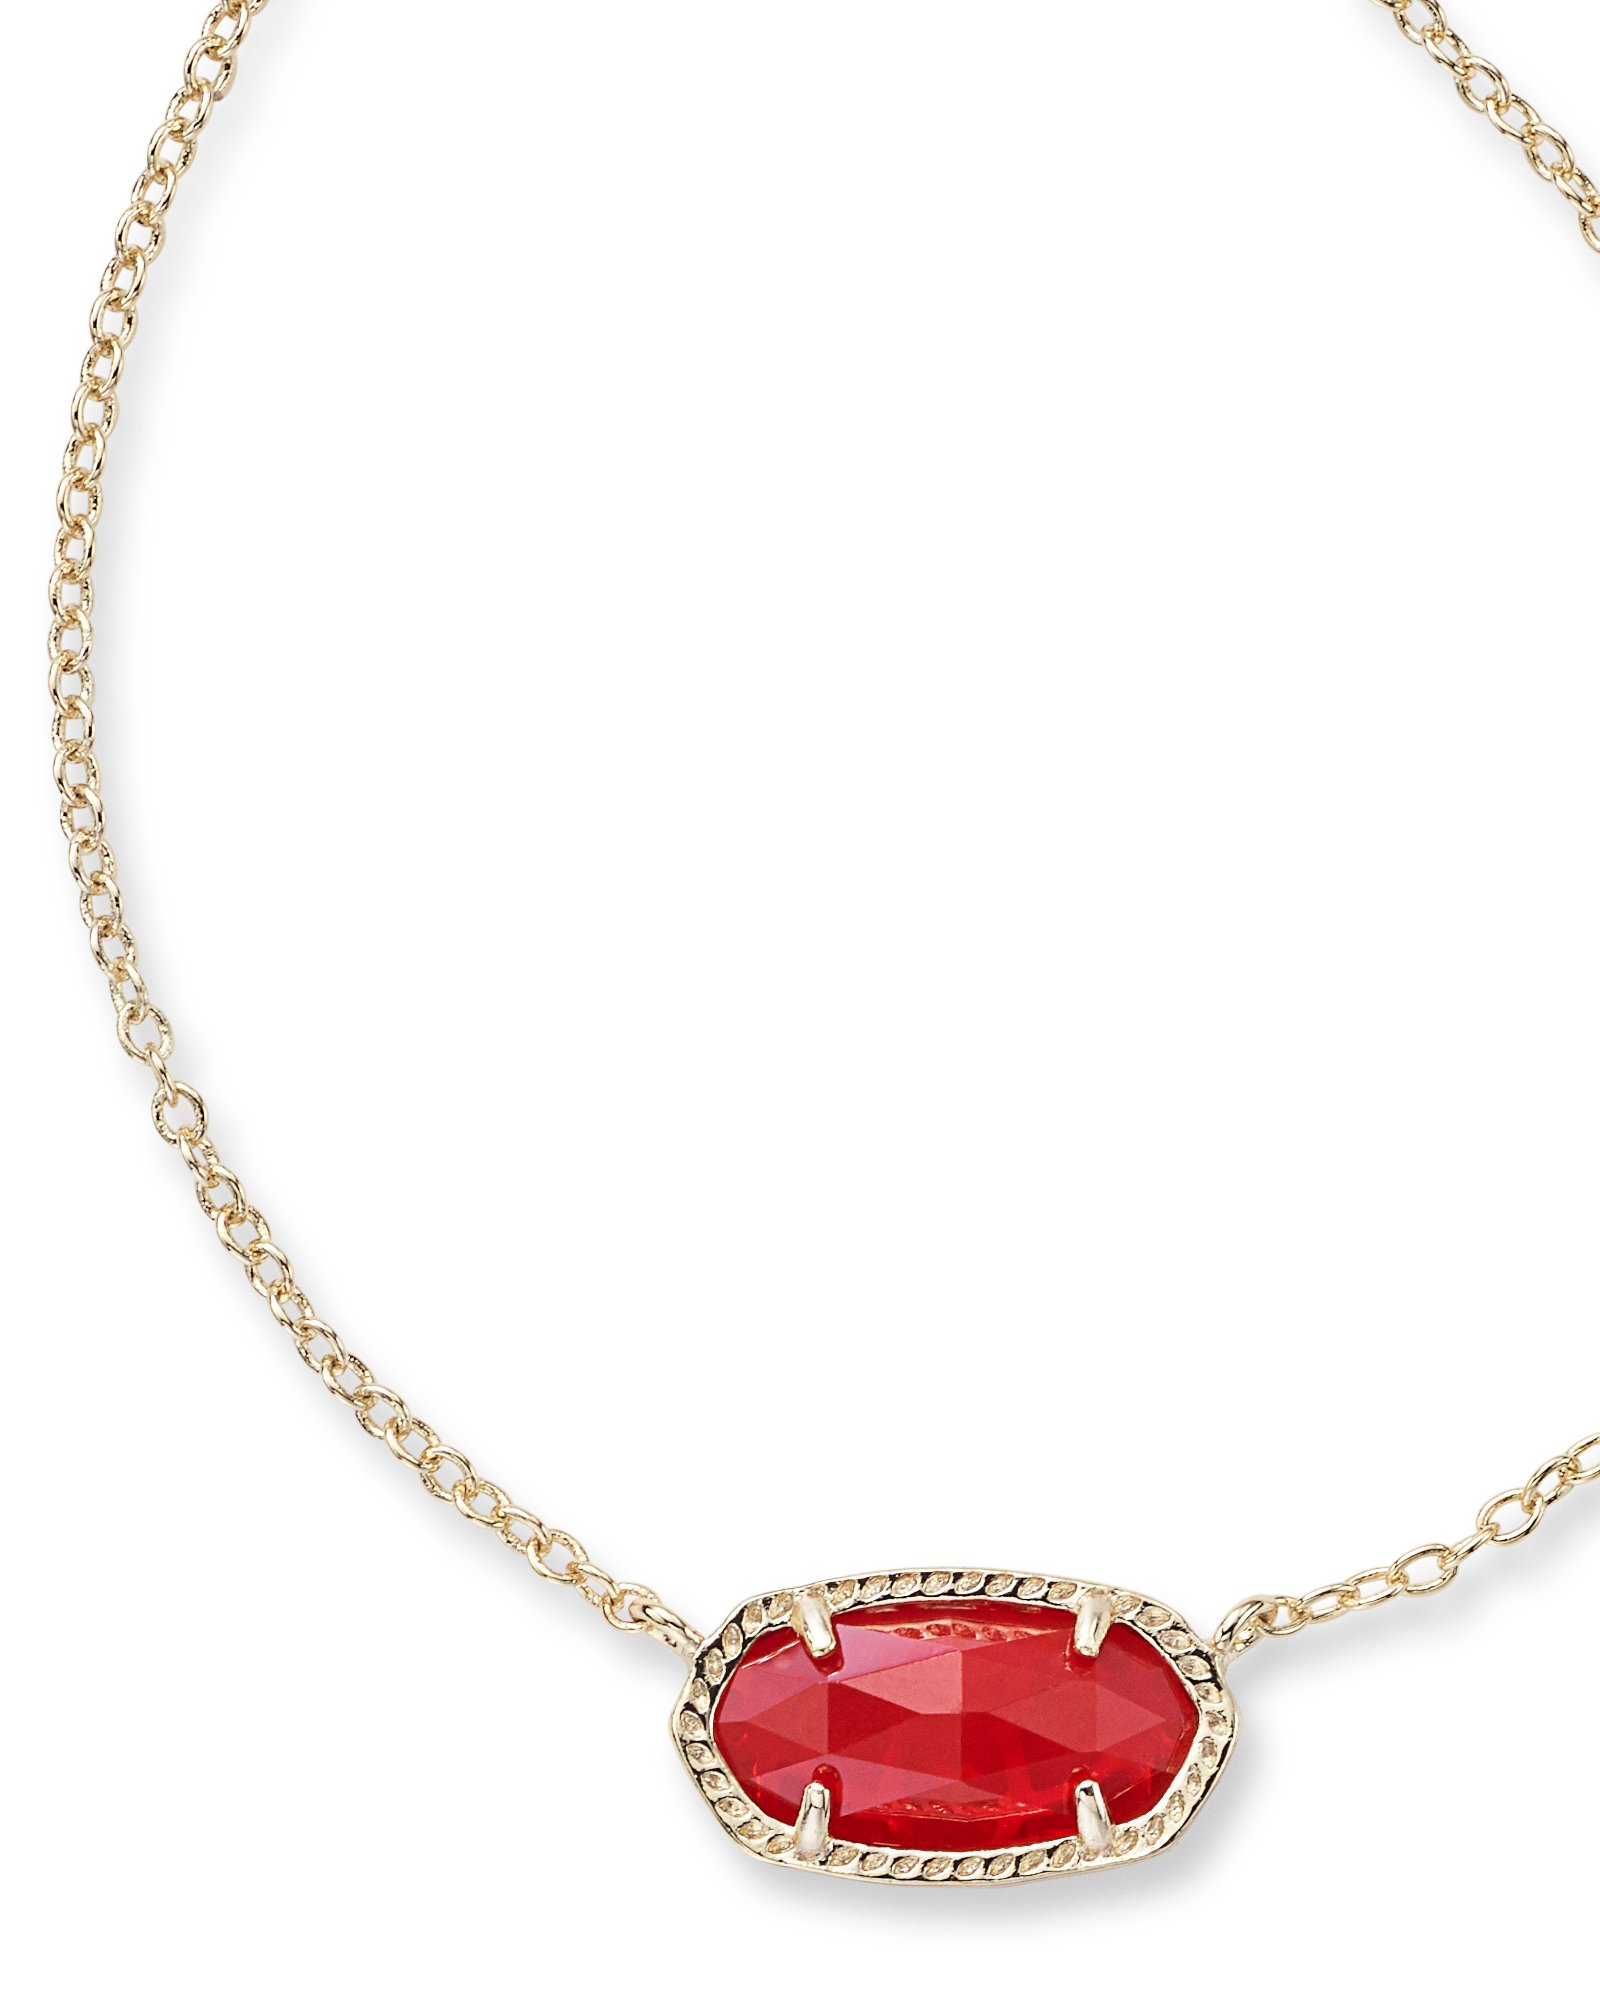 Kendra Scott Women's Elisa Birthstone Necklace July/Gold/Ruby Red Clear Glass Necklace